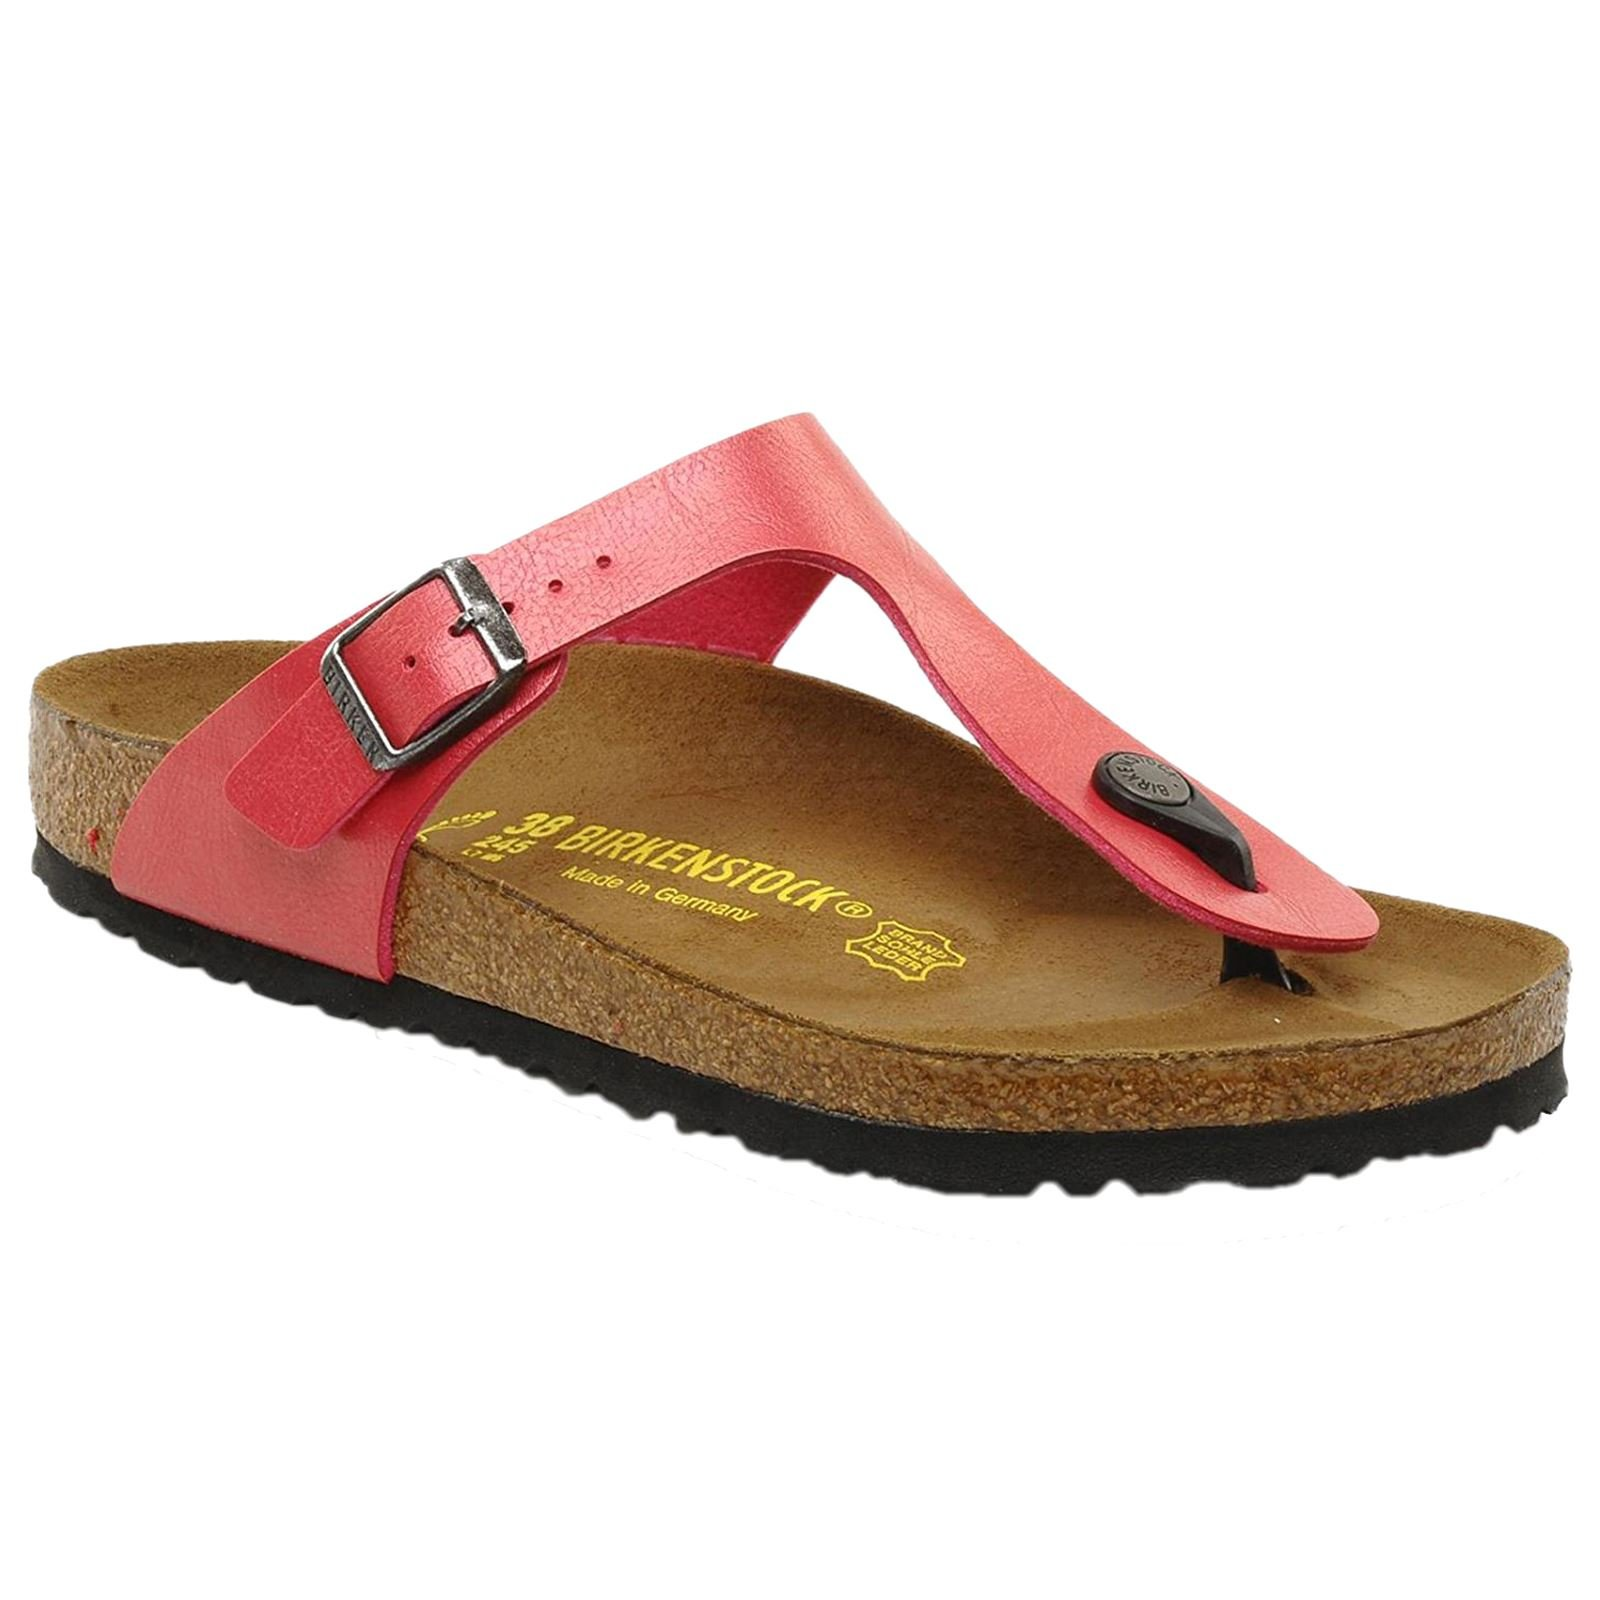 aae5d927bbf3 Galleon - Birkenstock Womens Gizeh Cherry Birko-Flor Sandals 40 EU